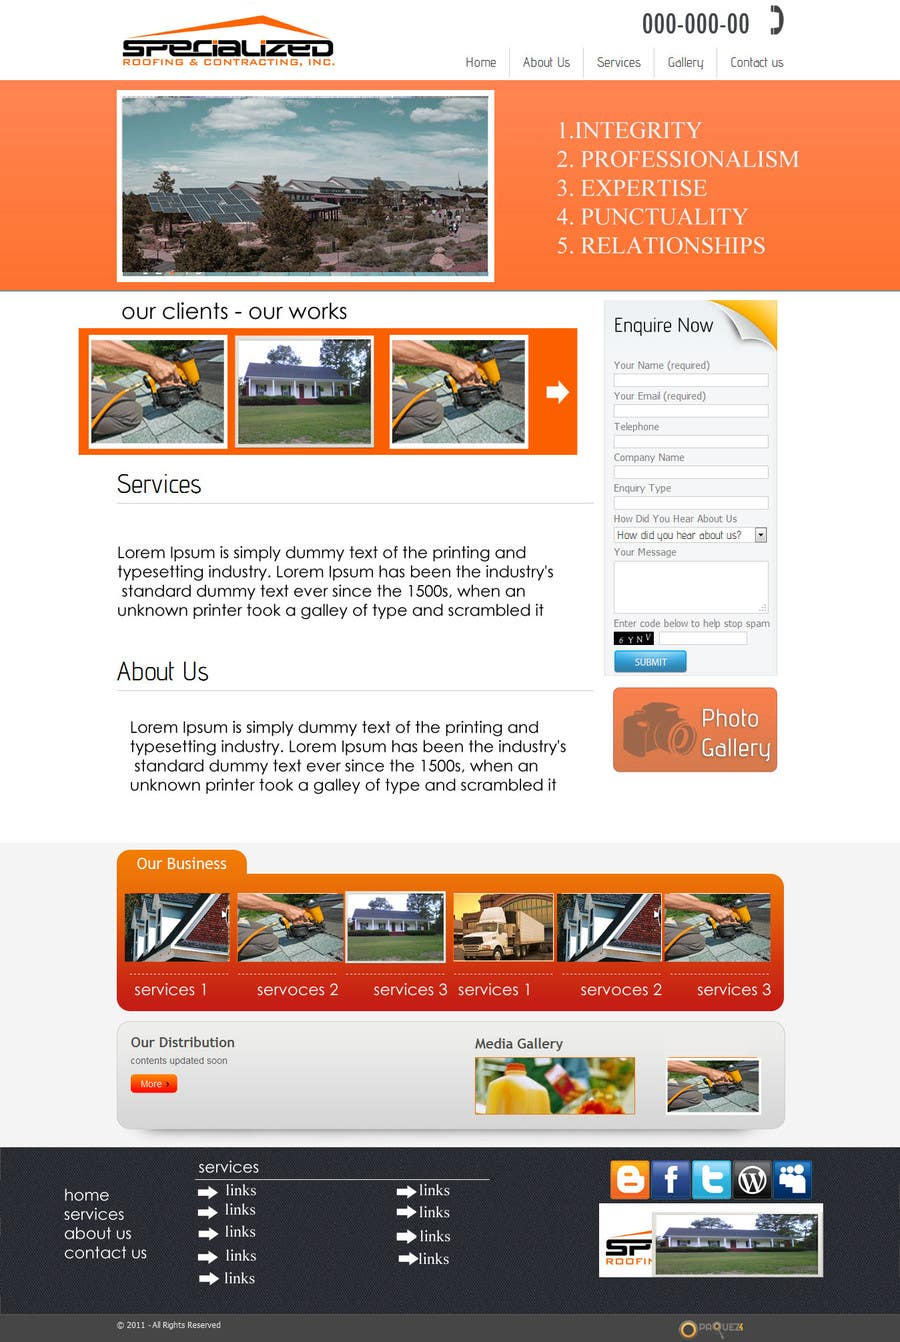 Bài tham dự cuộc thi #                                        7                                      cho                                         Wordpress Theme Design for Specialized Roofing & Contracting Inc.